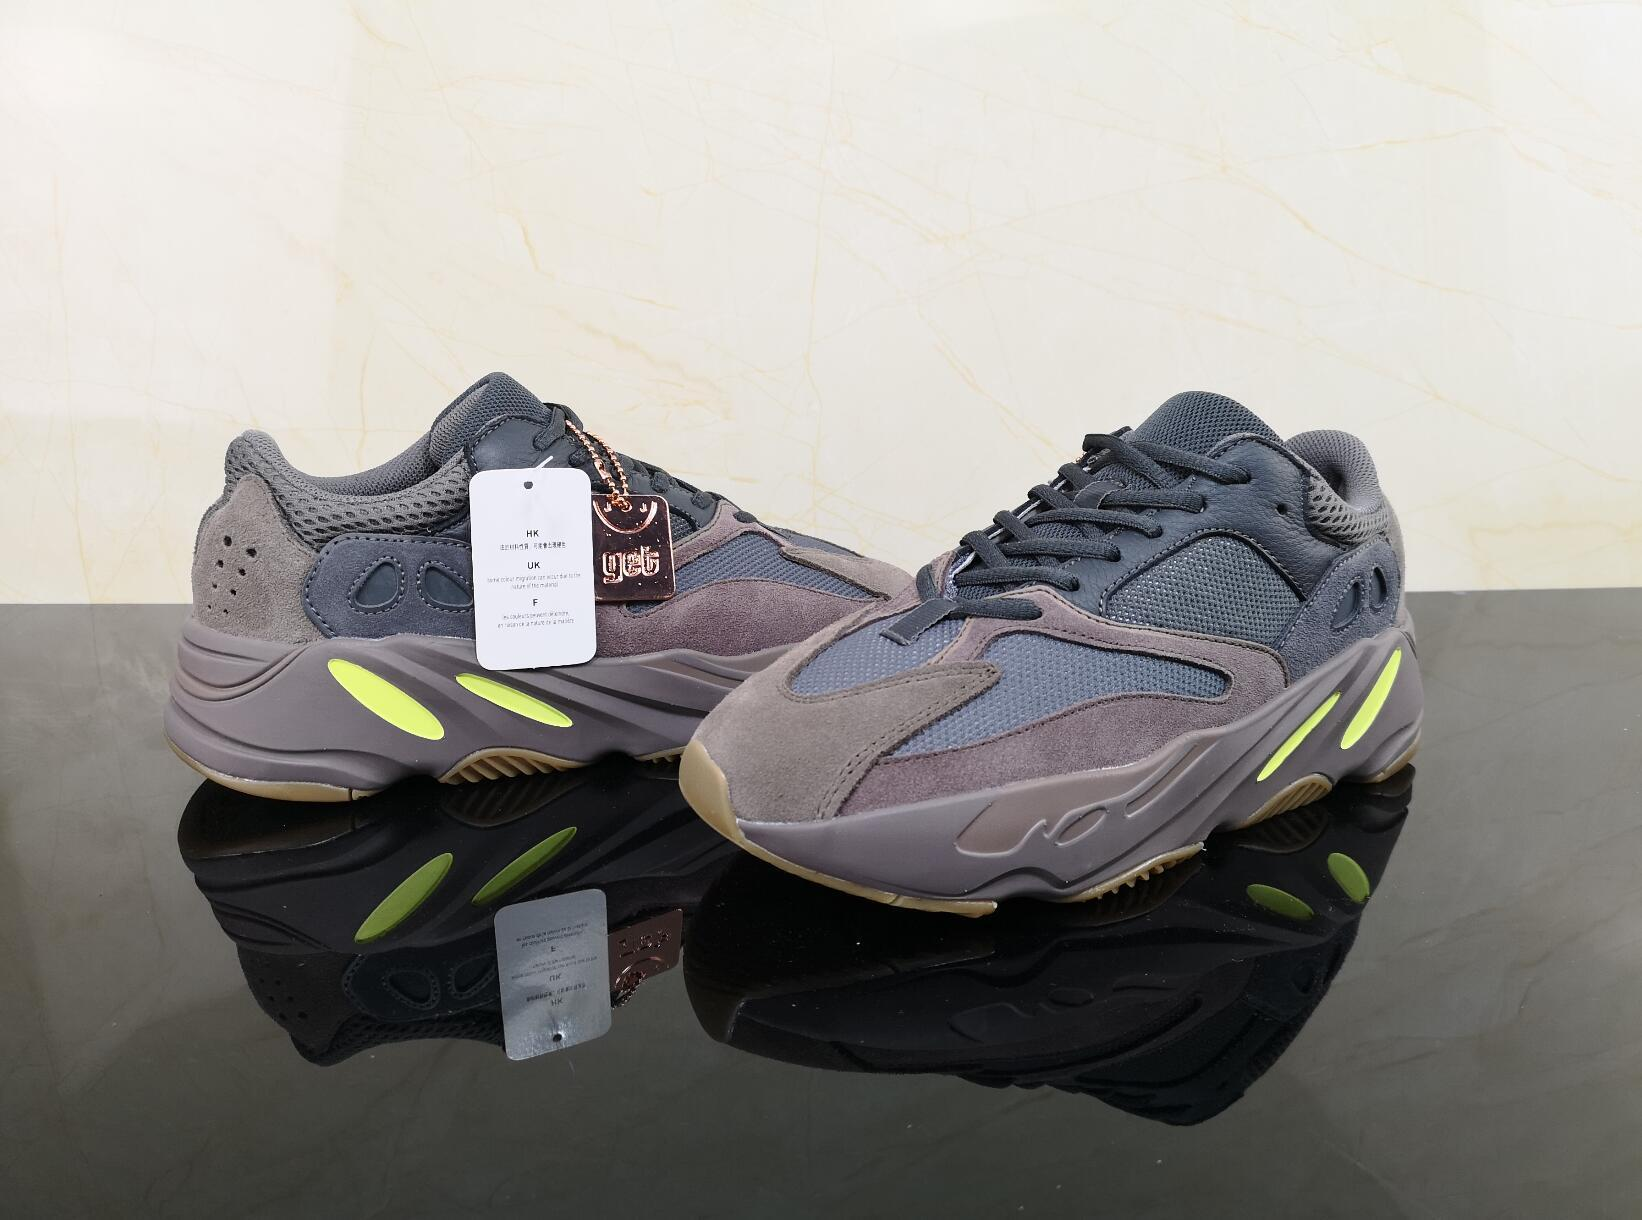 a9532f77be28a 2019 Sneakers Onlindesigners 700 Wave Runner Mauve EE9614 B75571 ...